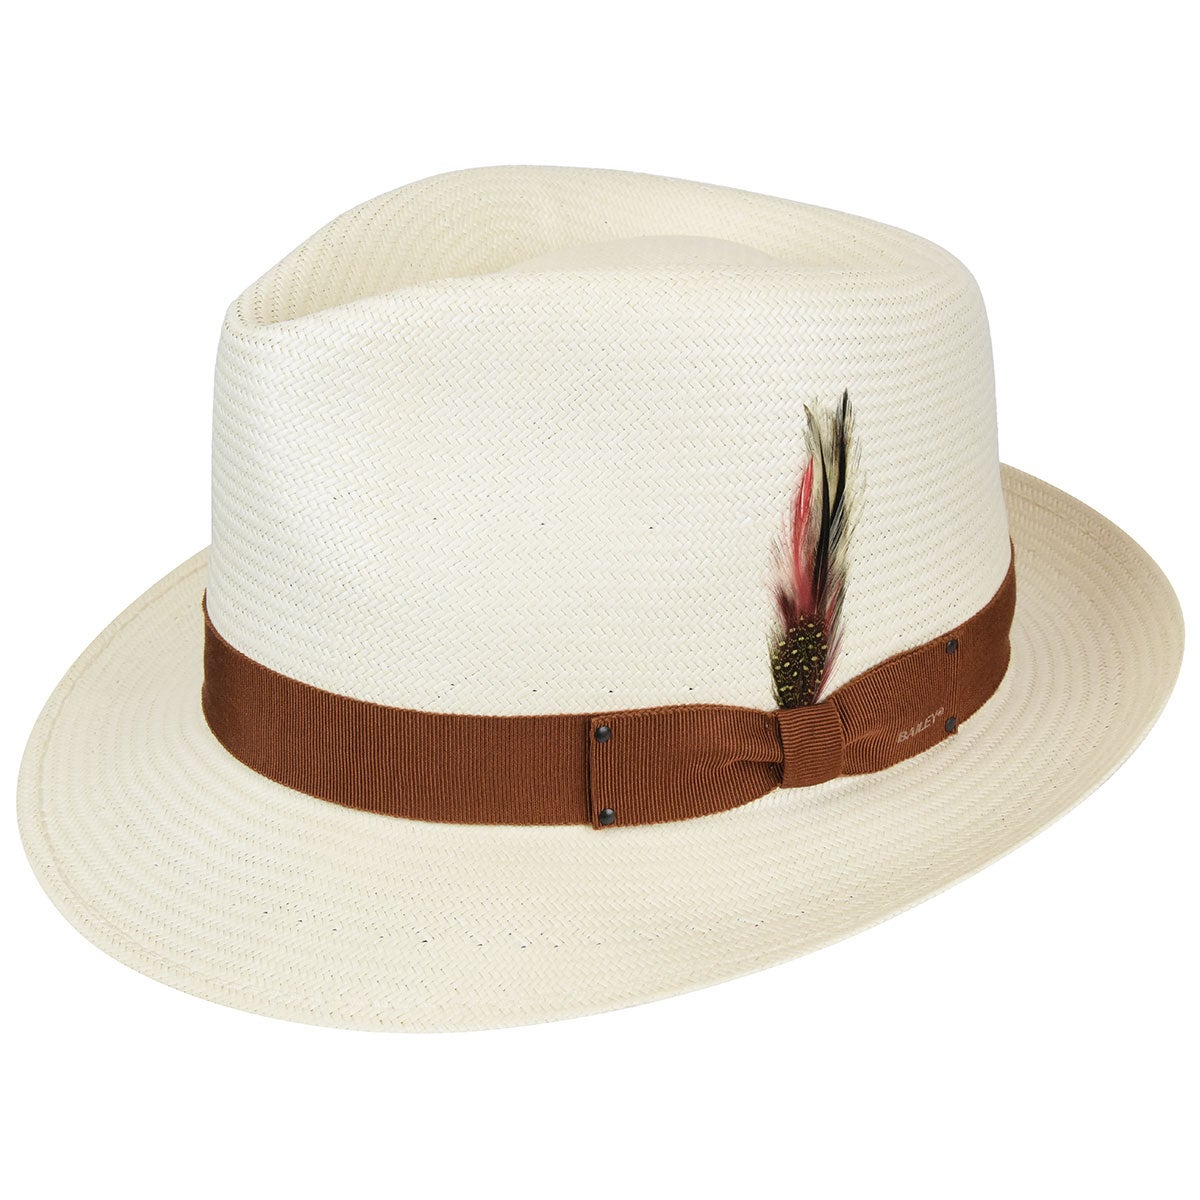 1940s Men's Fashion, Clothing Styles Guthrie Litestraw Fedora $130.00 AT vintagedancer.com